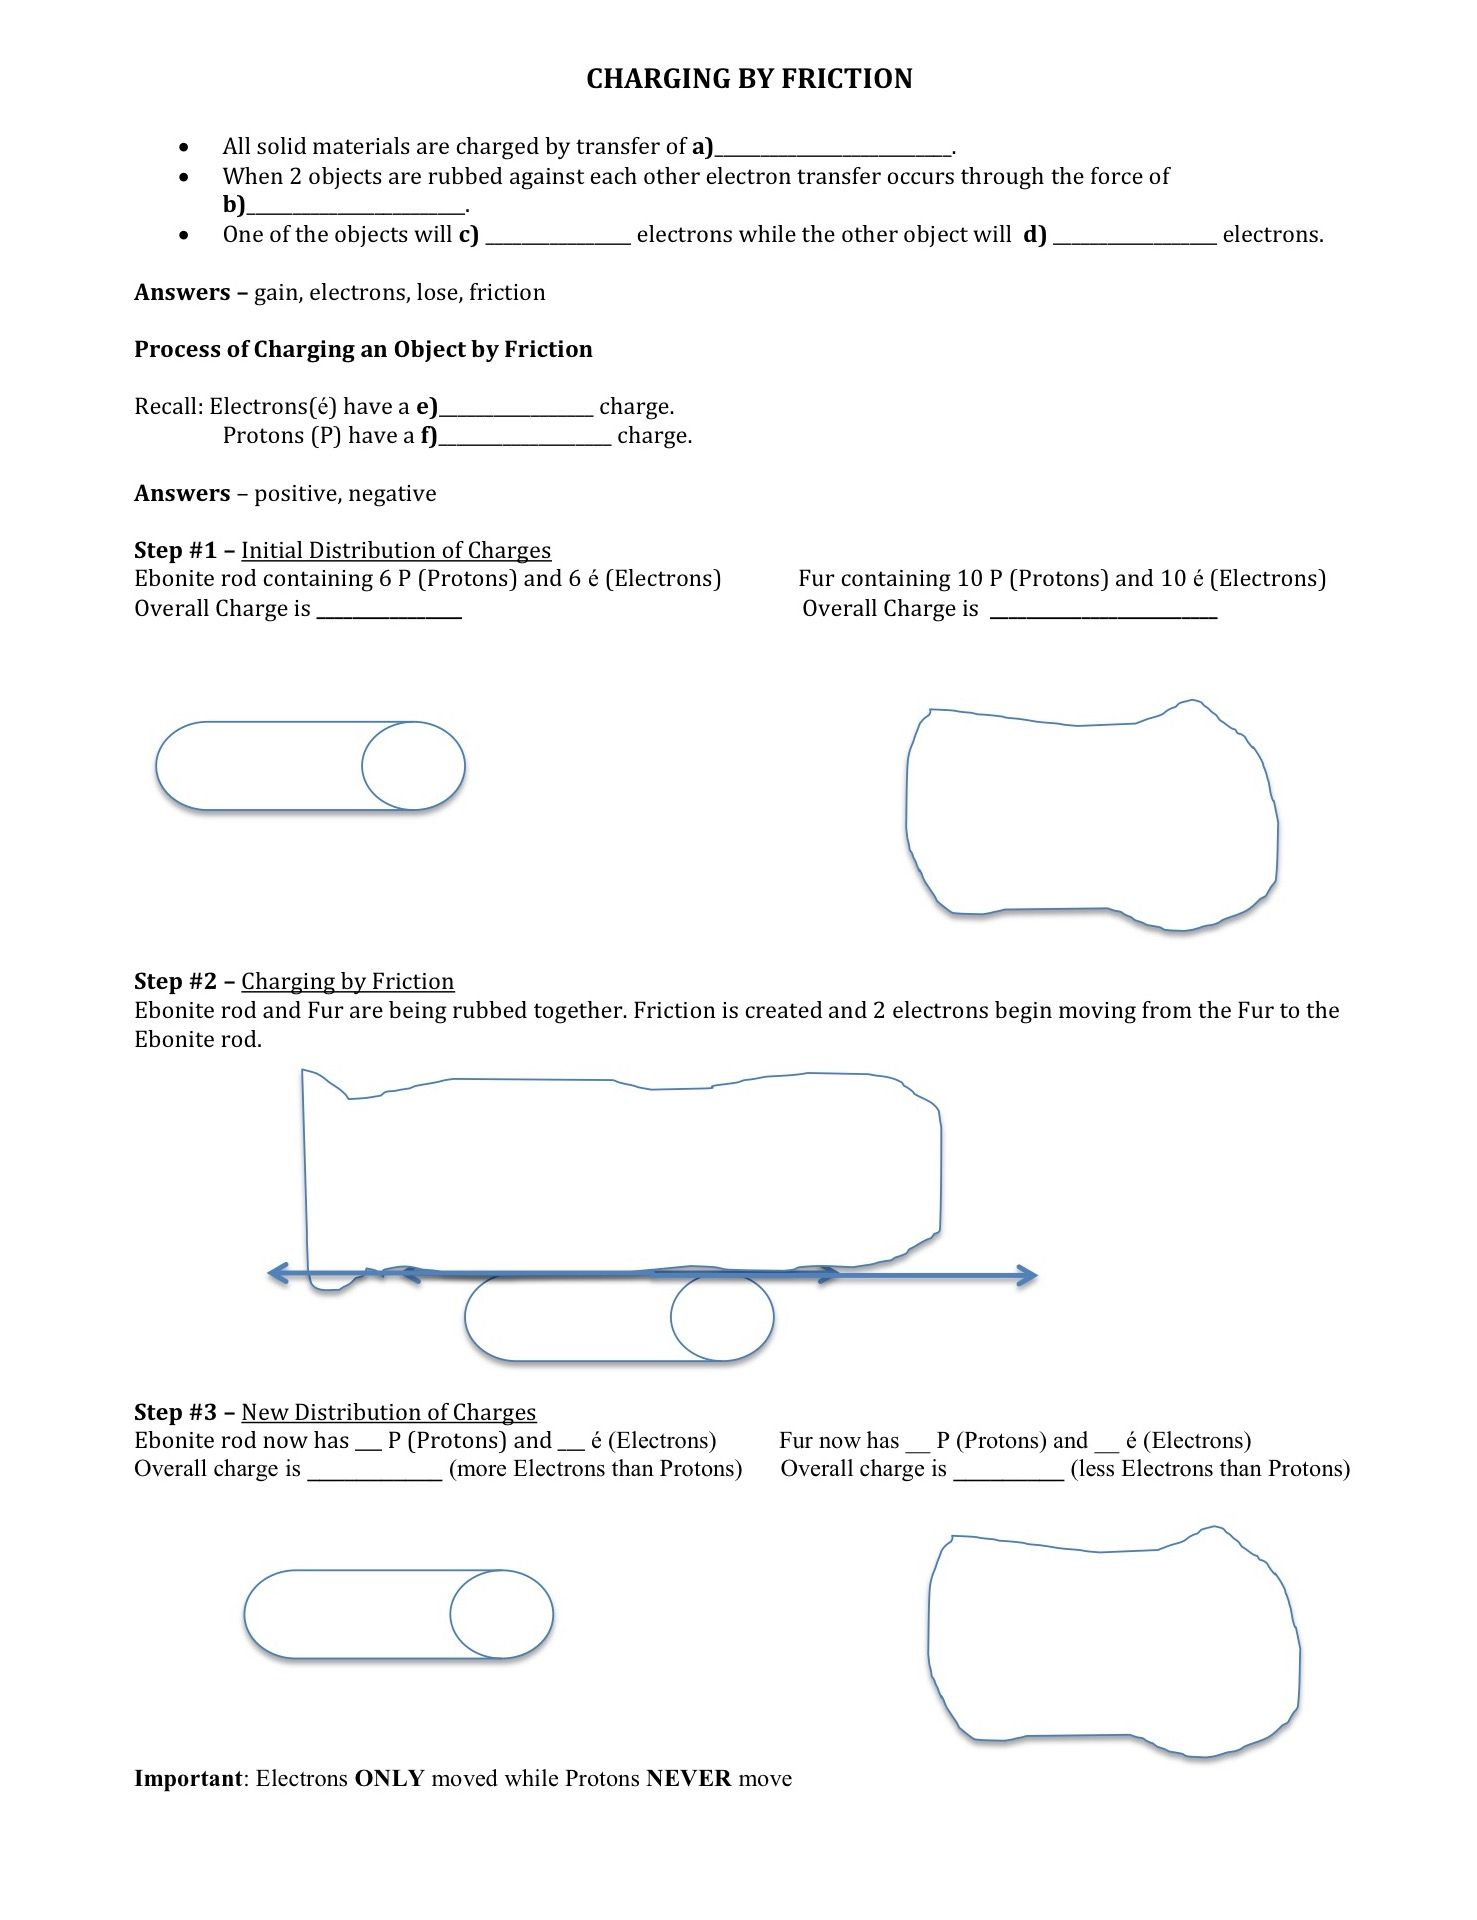 small resolution of Friction Worksheets For Elementary   Printable Worksheets and Activities  for Teachers